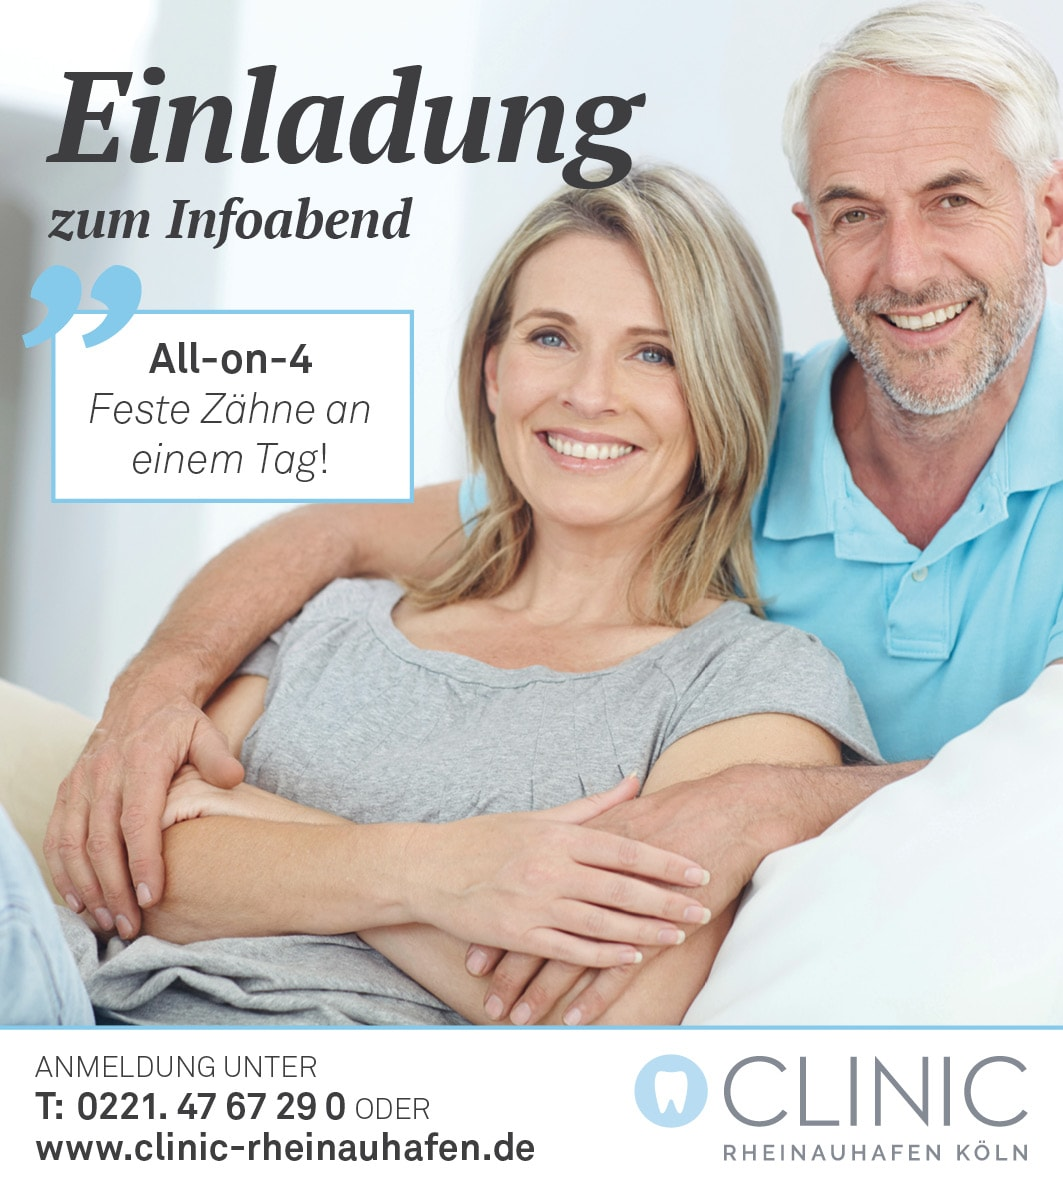 All-on-4 Infoabend